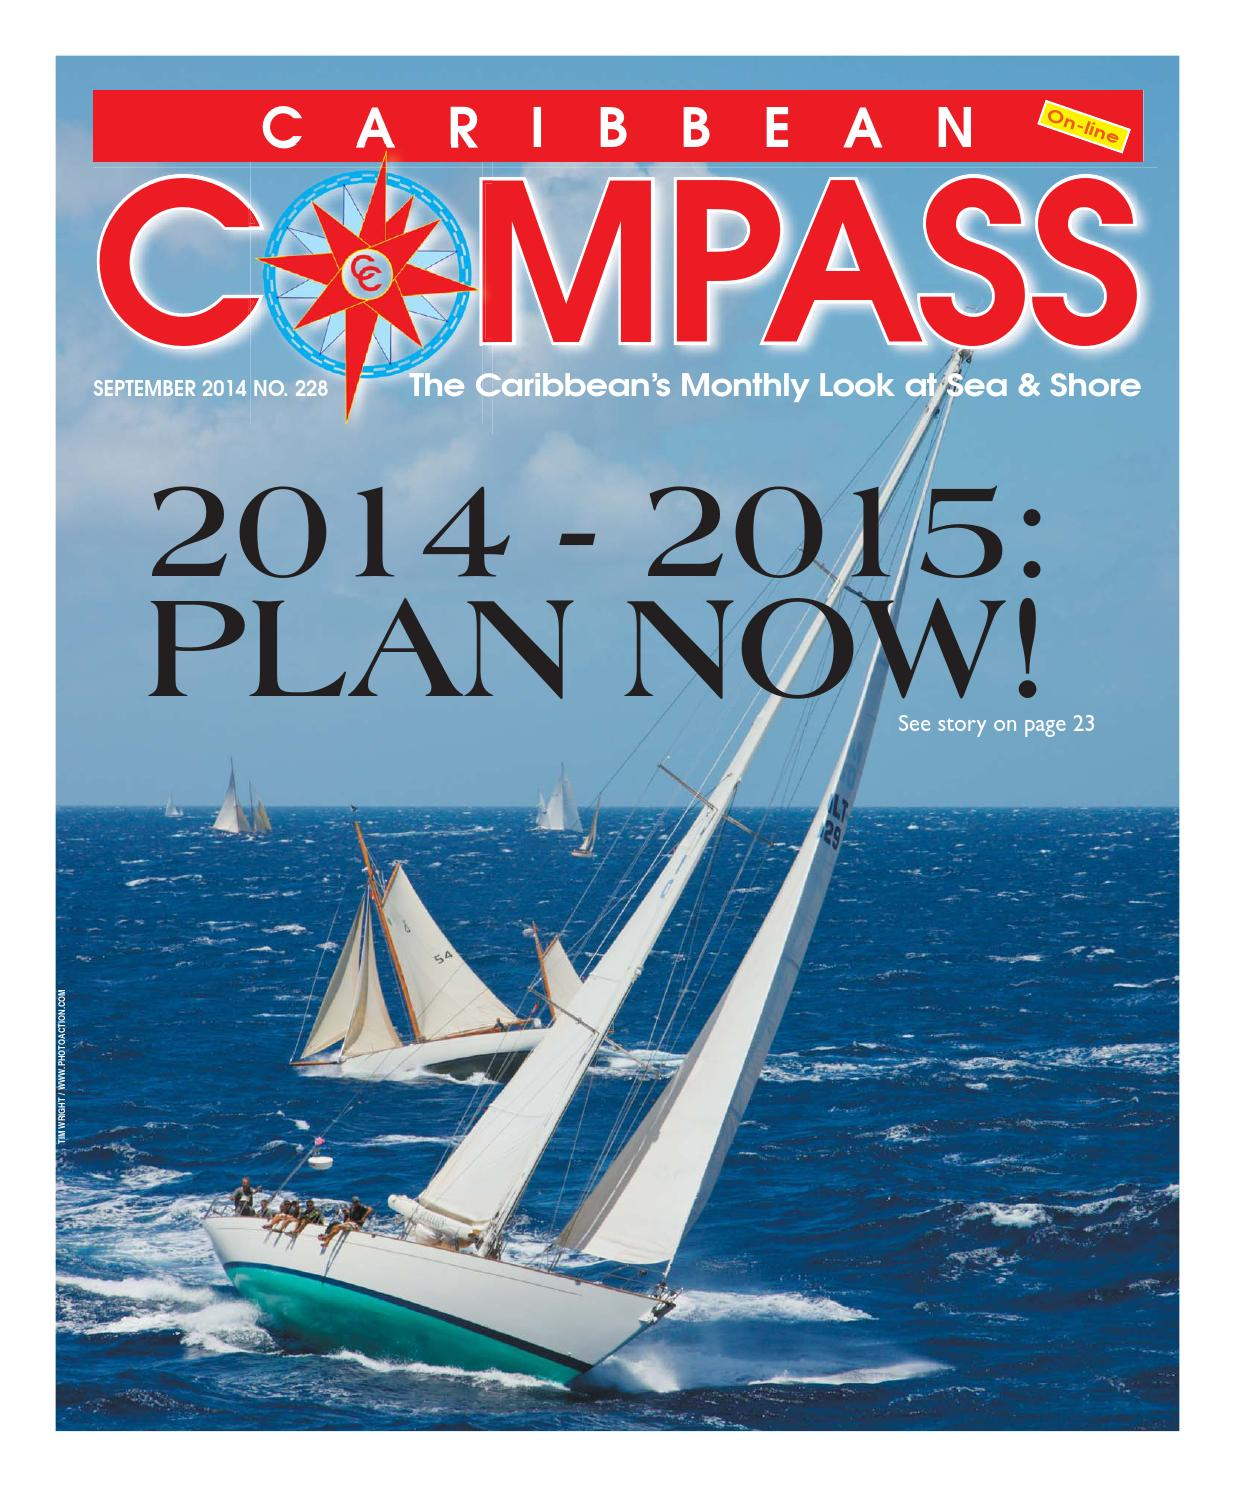 Caribbean compass yachting magazine september 2014 by compass caribbean compass yachting magazine september 2014 by compass publishing issuu fandeluxe Image collections